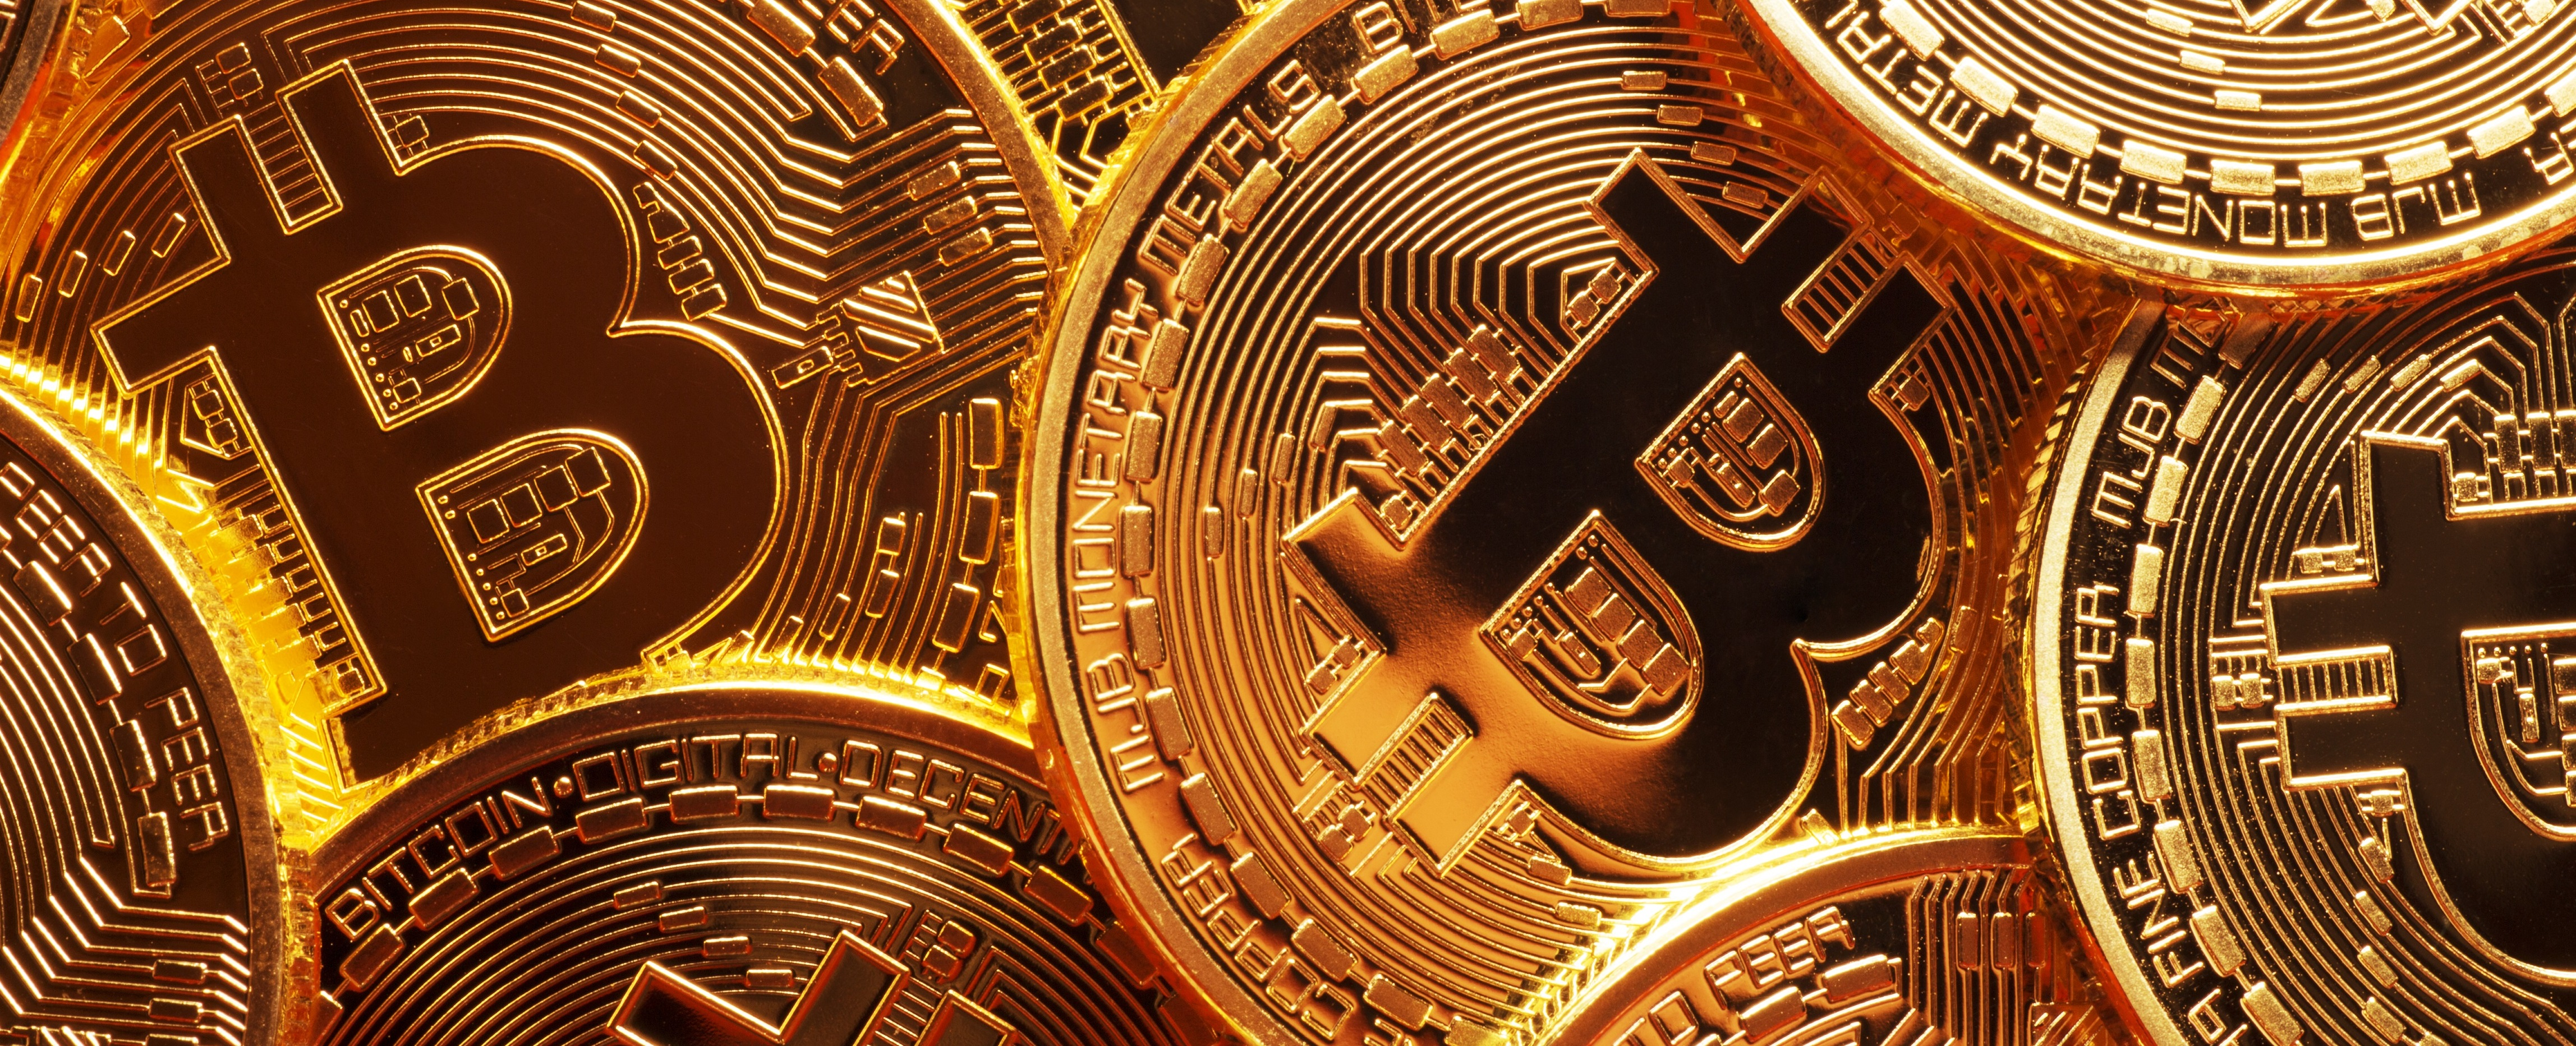 Bitcoins. Photo/Credit: skodonnell/iStock.com